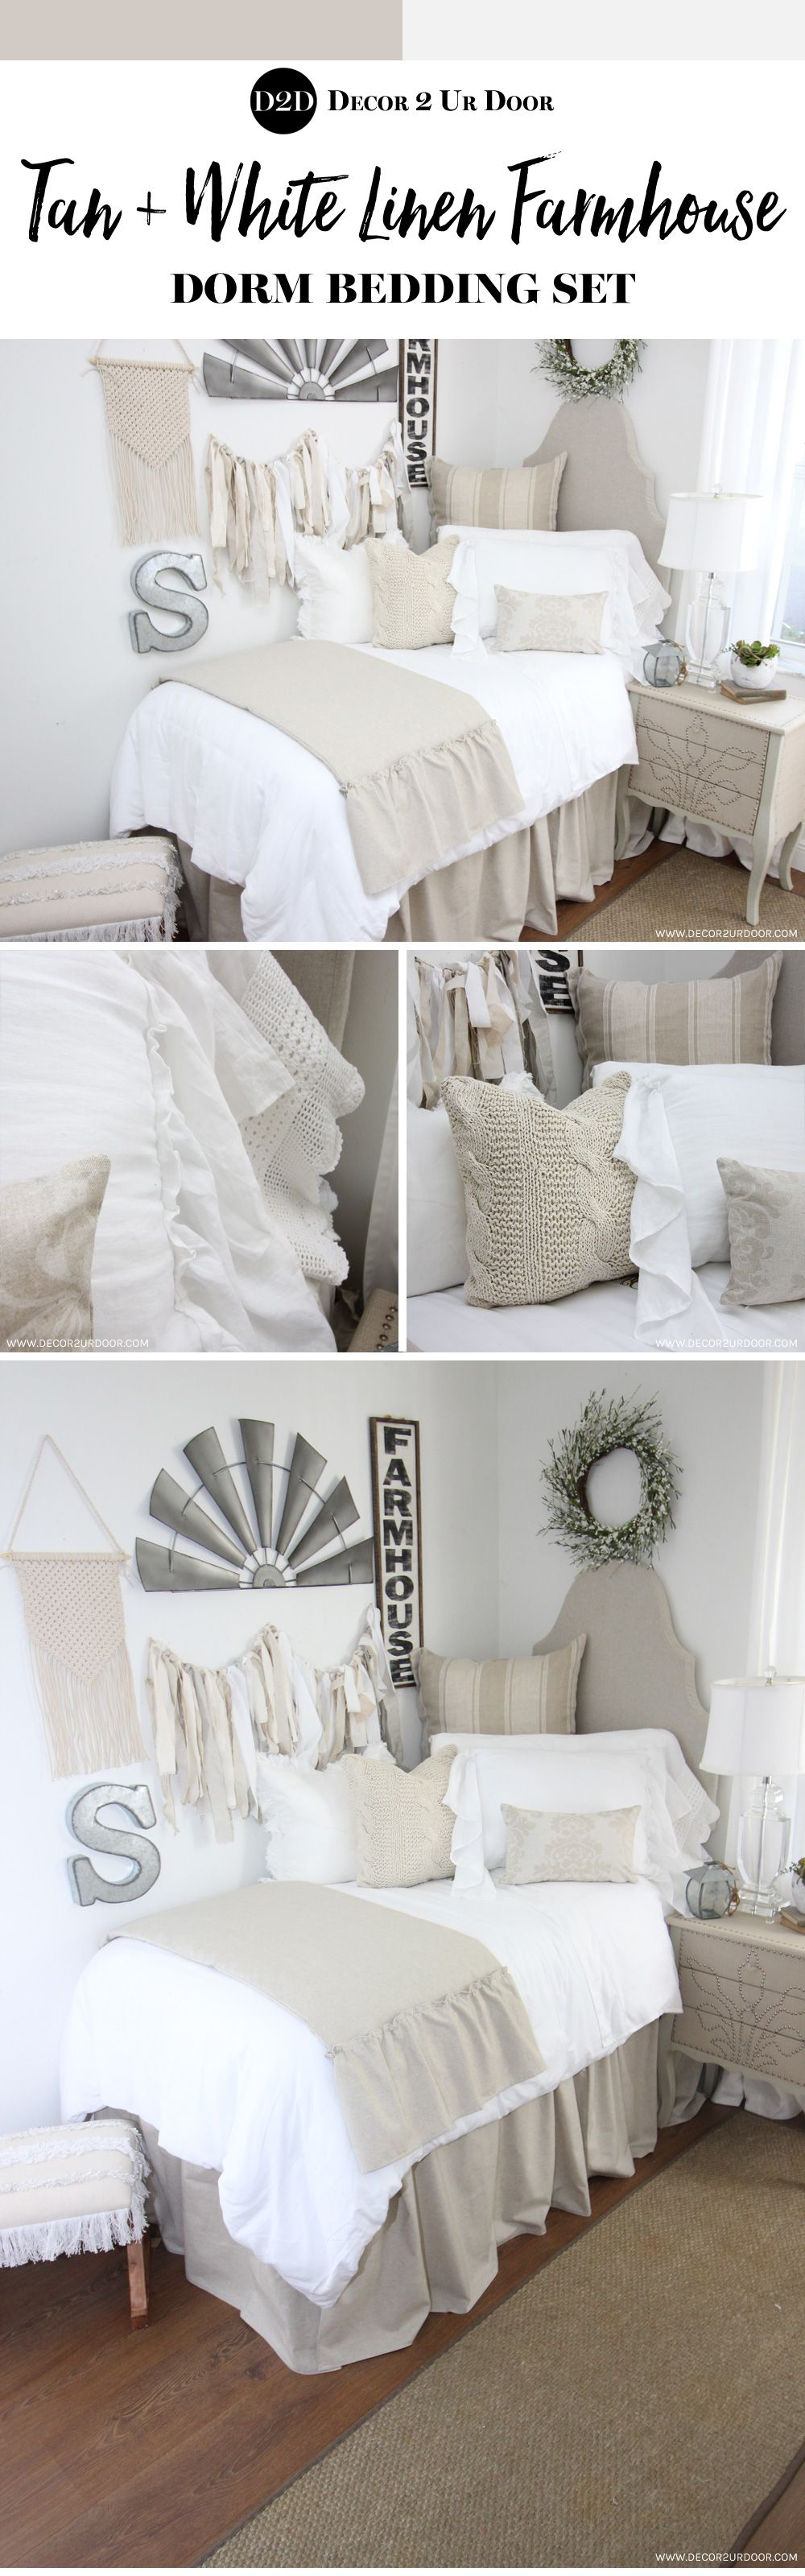 a needs all to your design of designs can their bed the full workroom room decor with and door are bedding efficiently quickly ur domestic below how curator create sampling dorm make